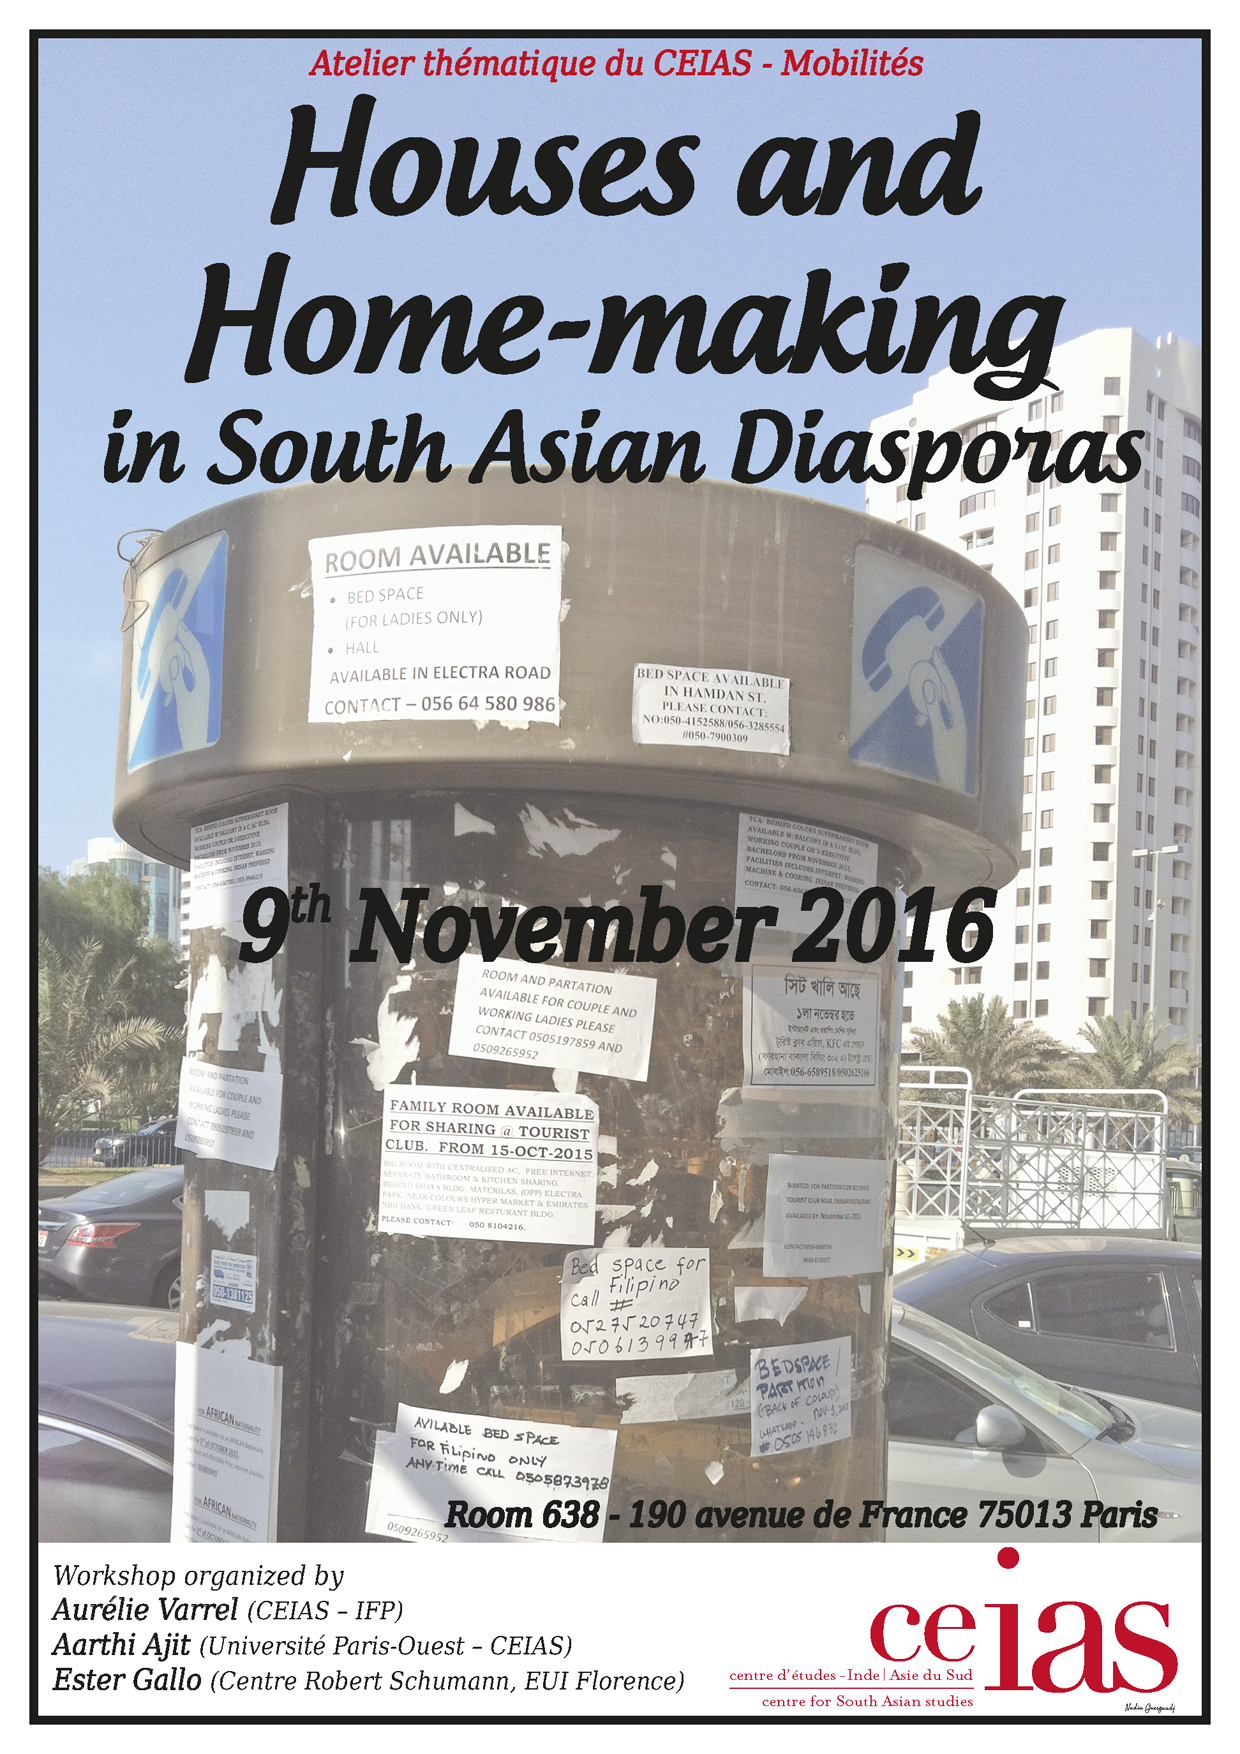 Houses and Home-making in South Asian Diasporas